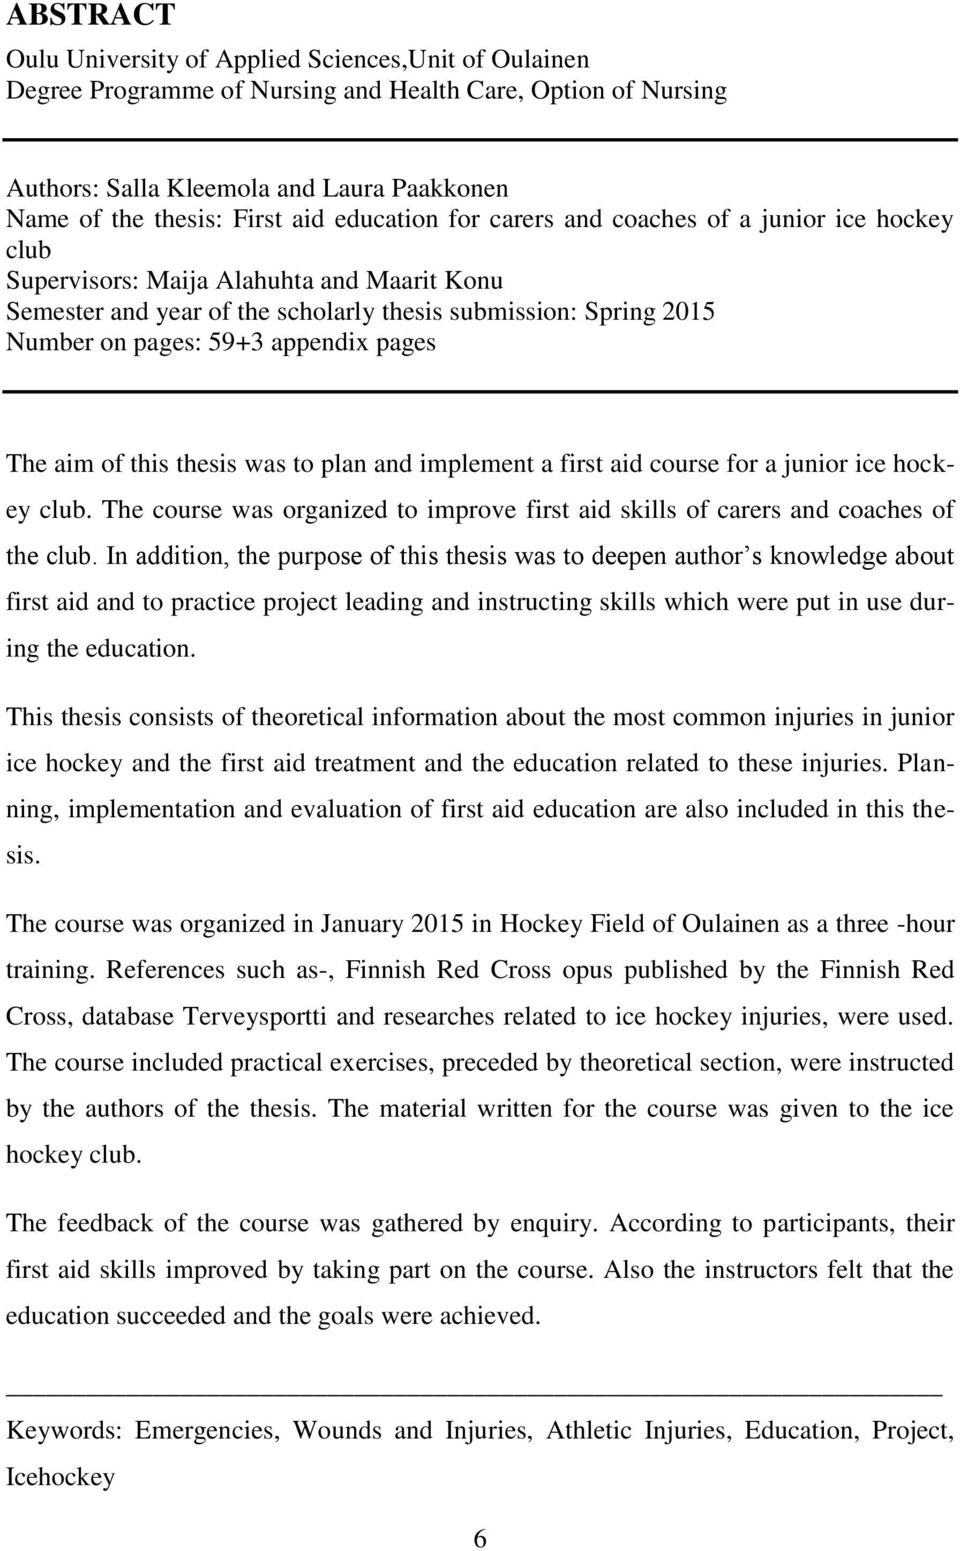 appendix pages The aim of this thesis was to plan and implement a first aid course for a junior ice hockey club. The course was organized to improve first aid skills of carers and coaches of the club.